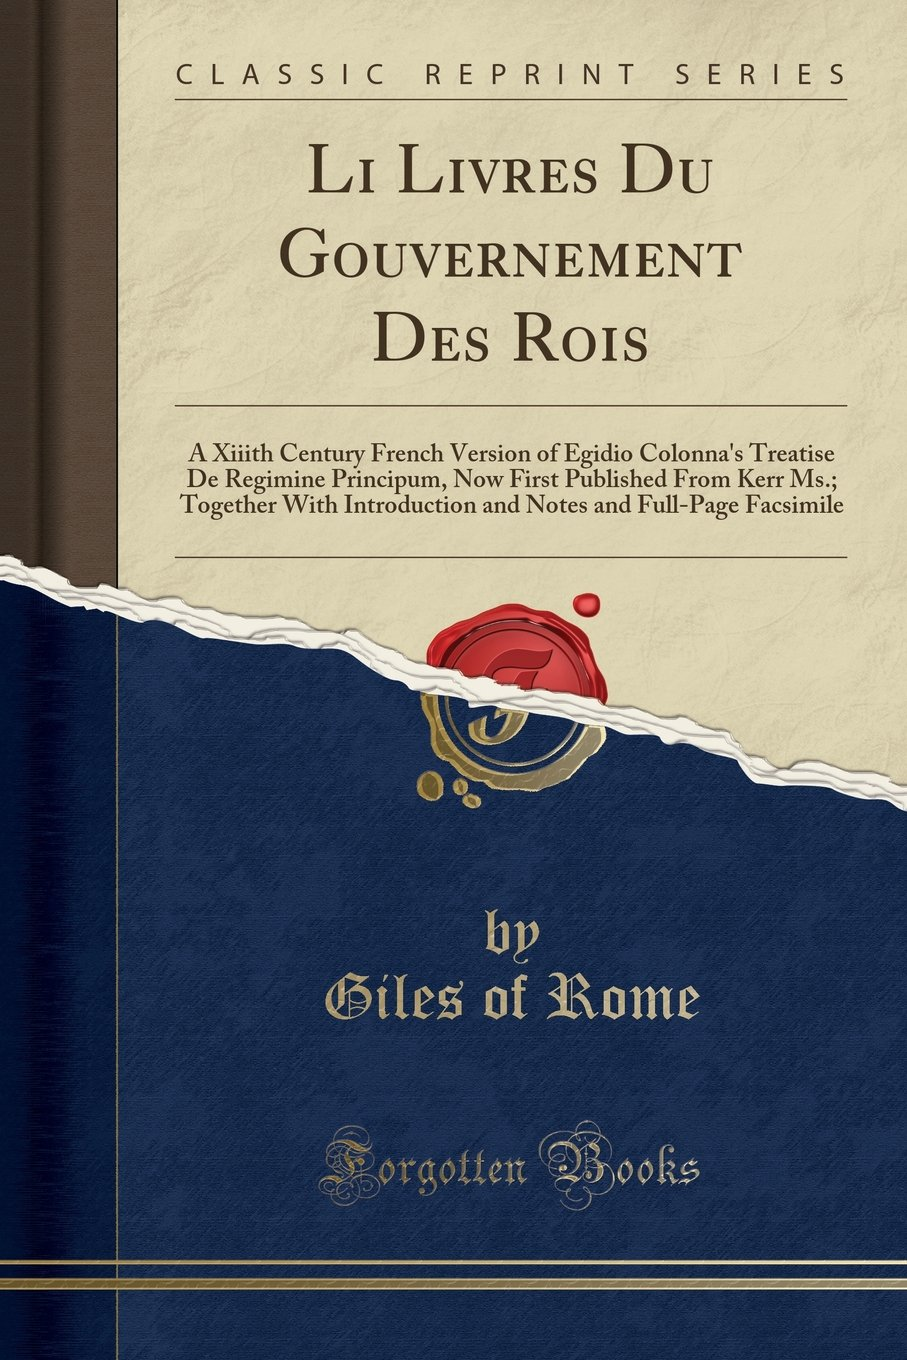 Li Livres Du Gouvernement Des Rois: A Xiiith Century French Version of Egidio Colonna's Treatise De Regimine Principum, Now First Published From Kerr ... and Full-Page Facsimile (Classic Reprint) pdf epub